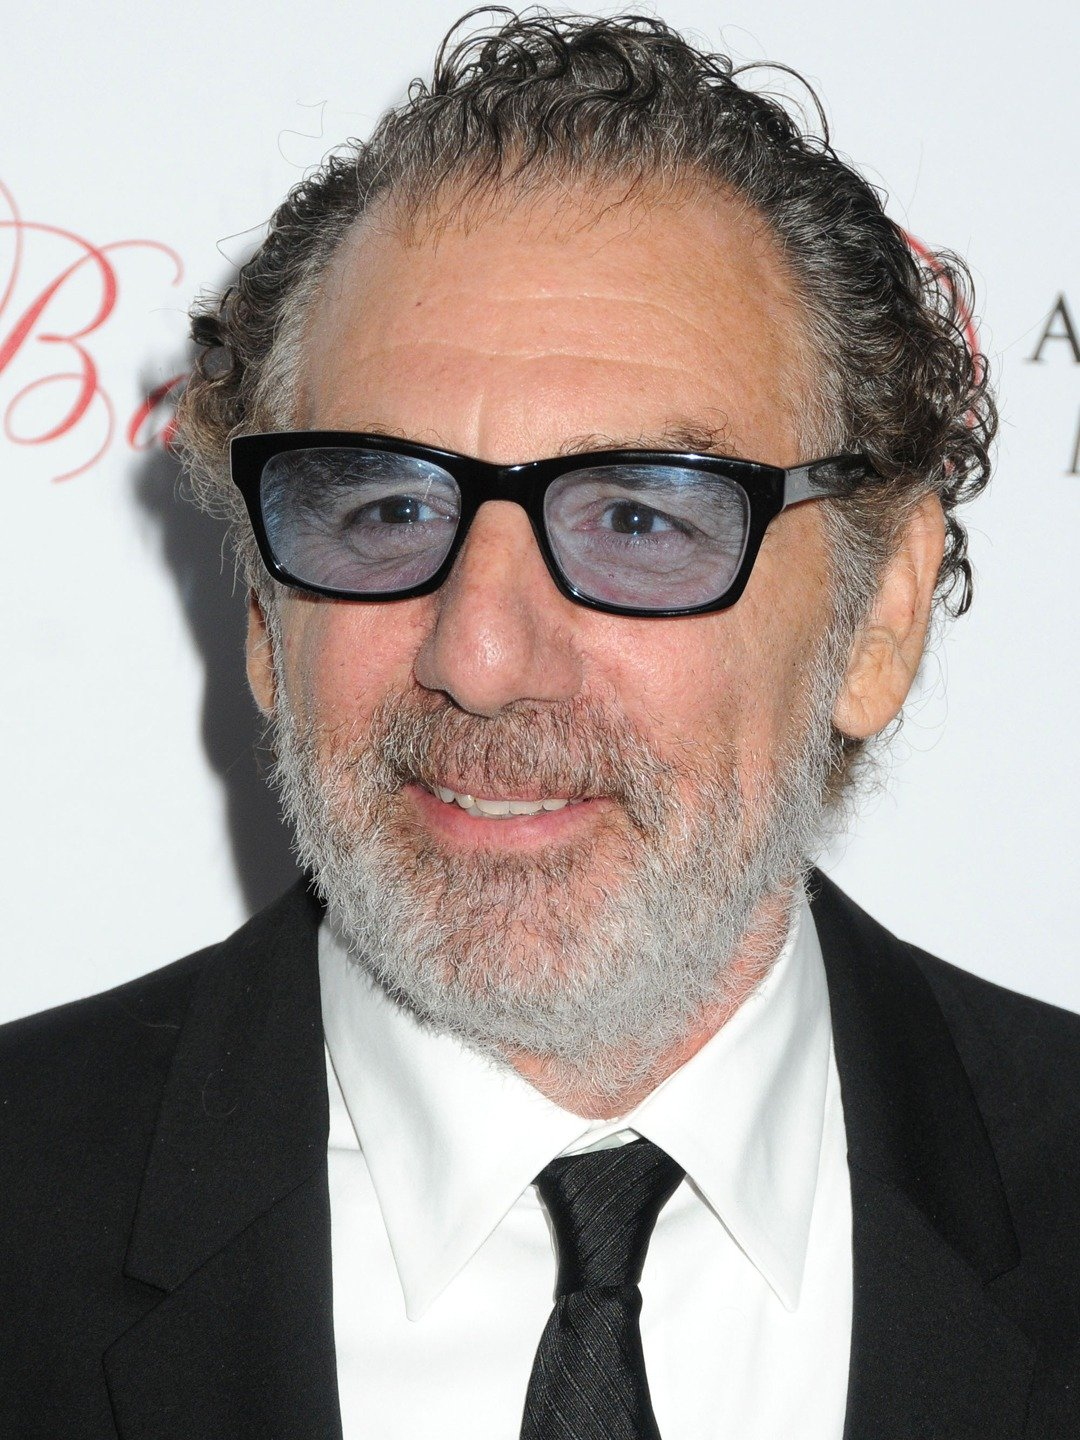 Michael Richards  wearing white shirt, black tie and suit